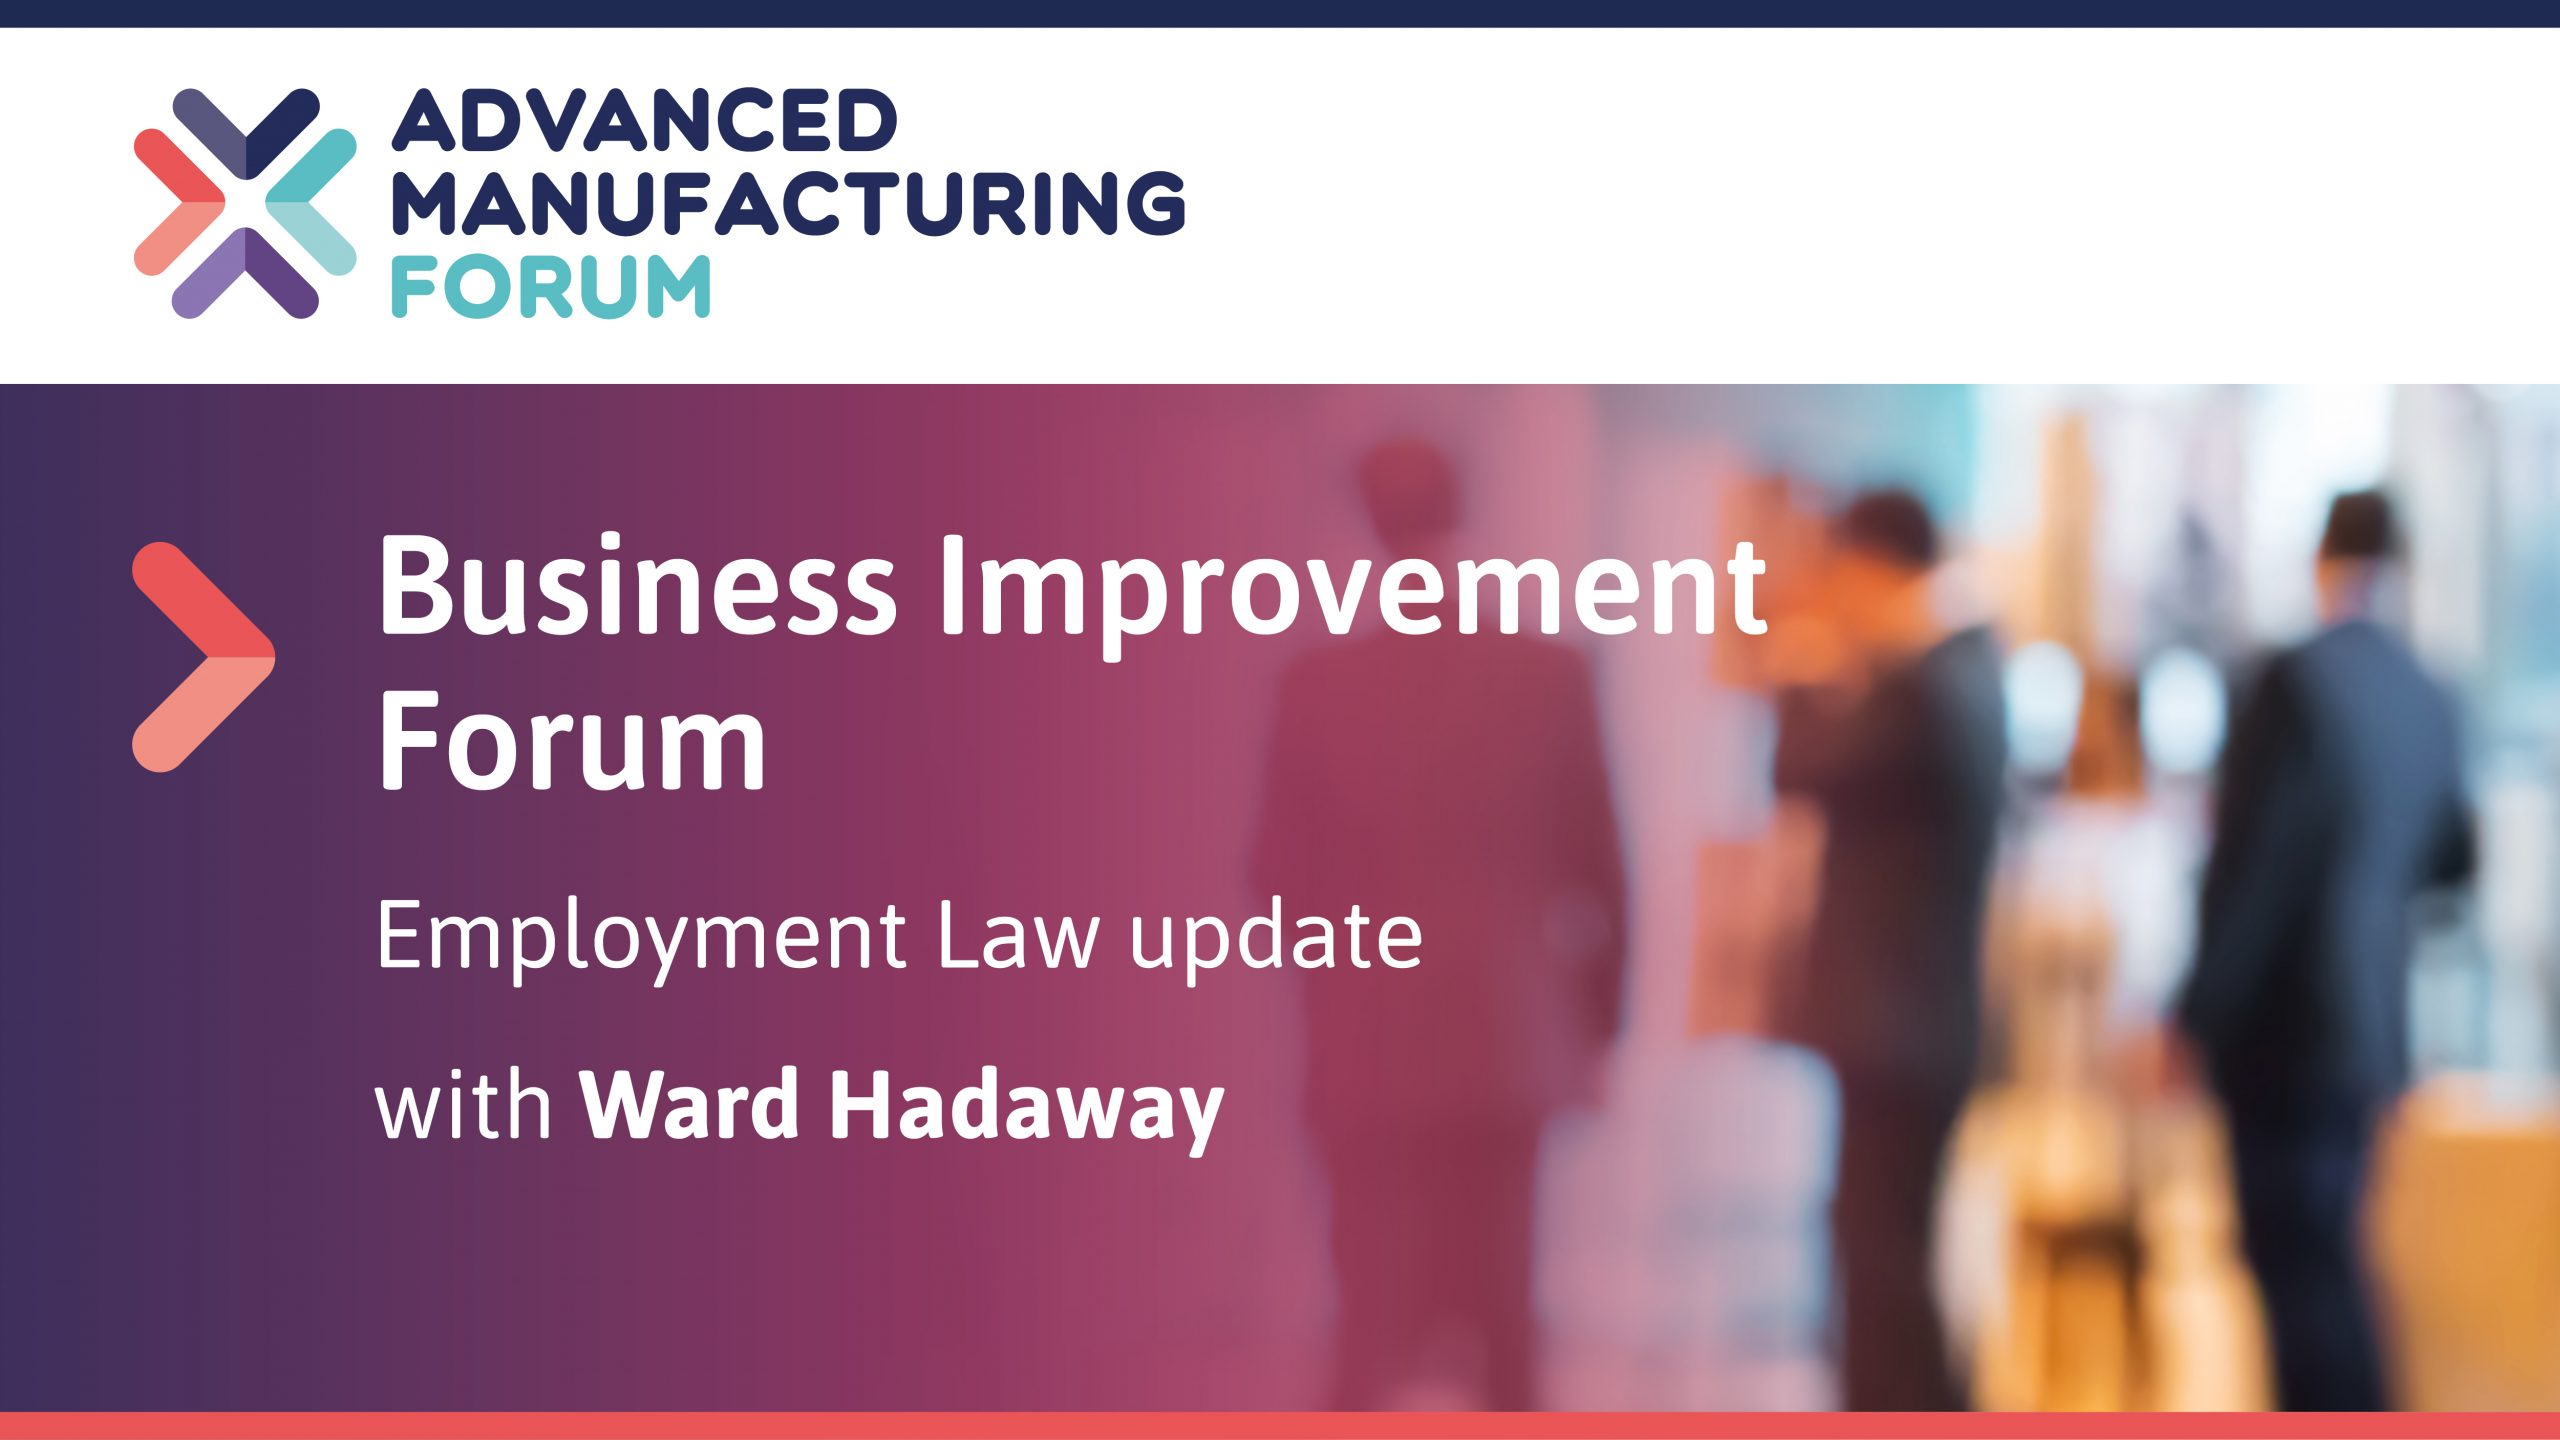 Employment Law Update with Ward Hadaway